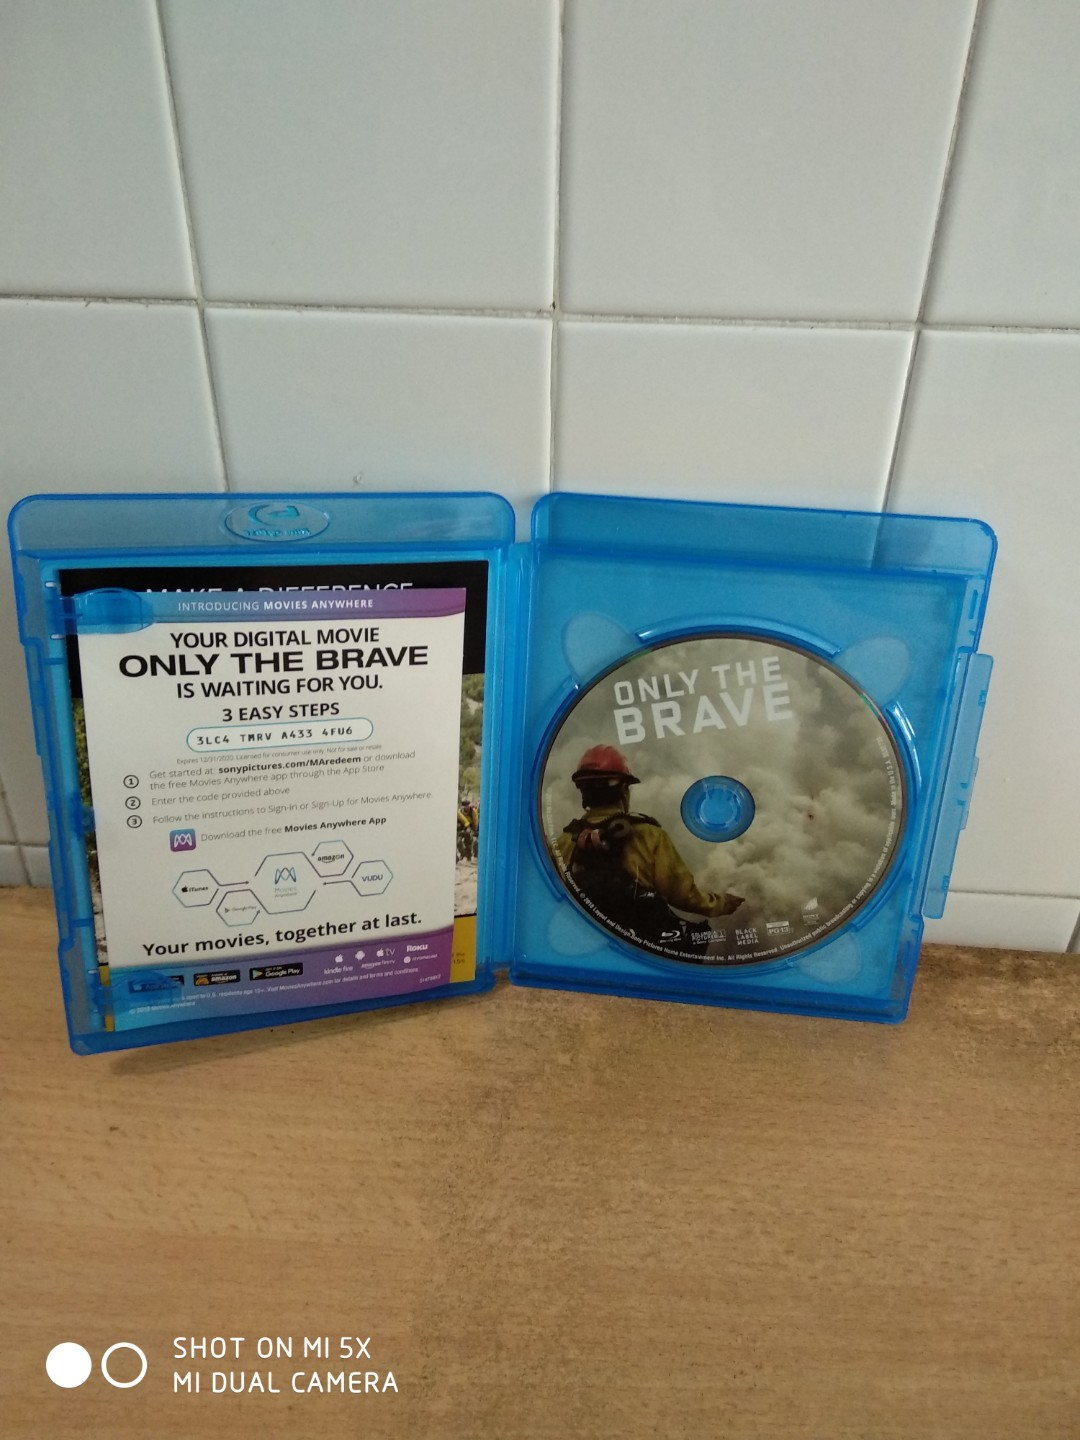 Only the Brave with slipcase - Blu Ray - US import (original)